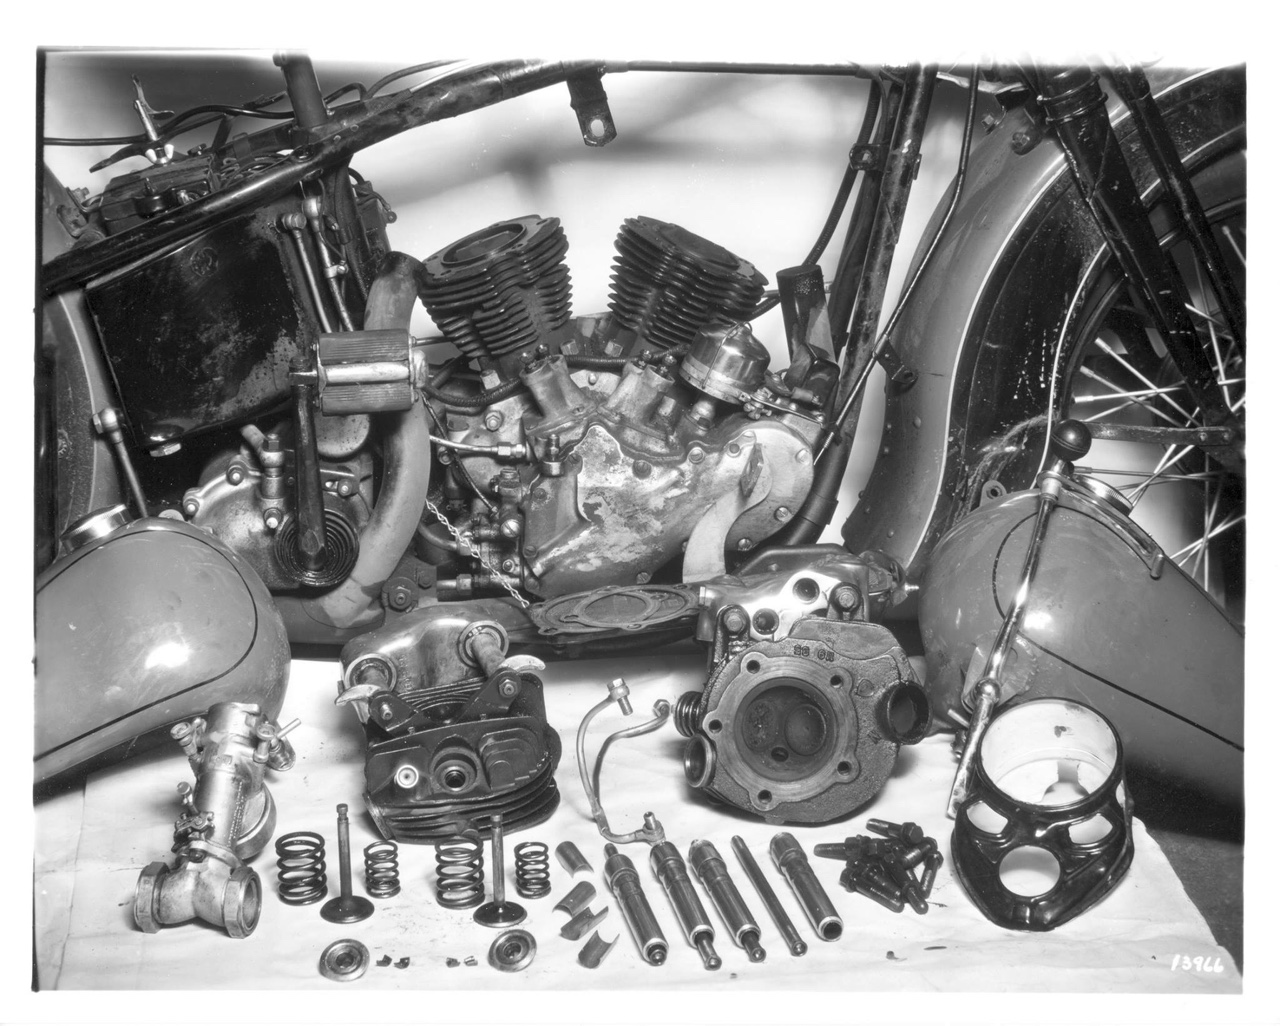 Despiece del motor OHV Knucklehead